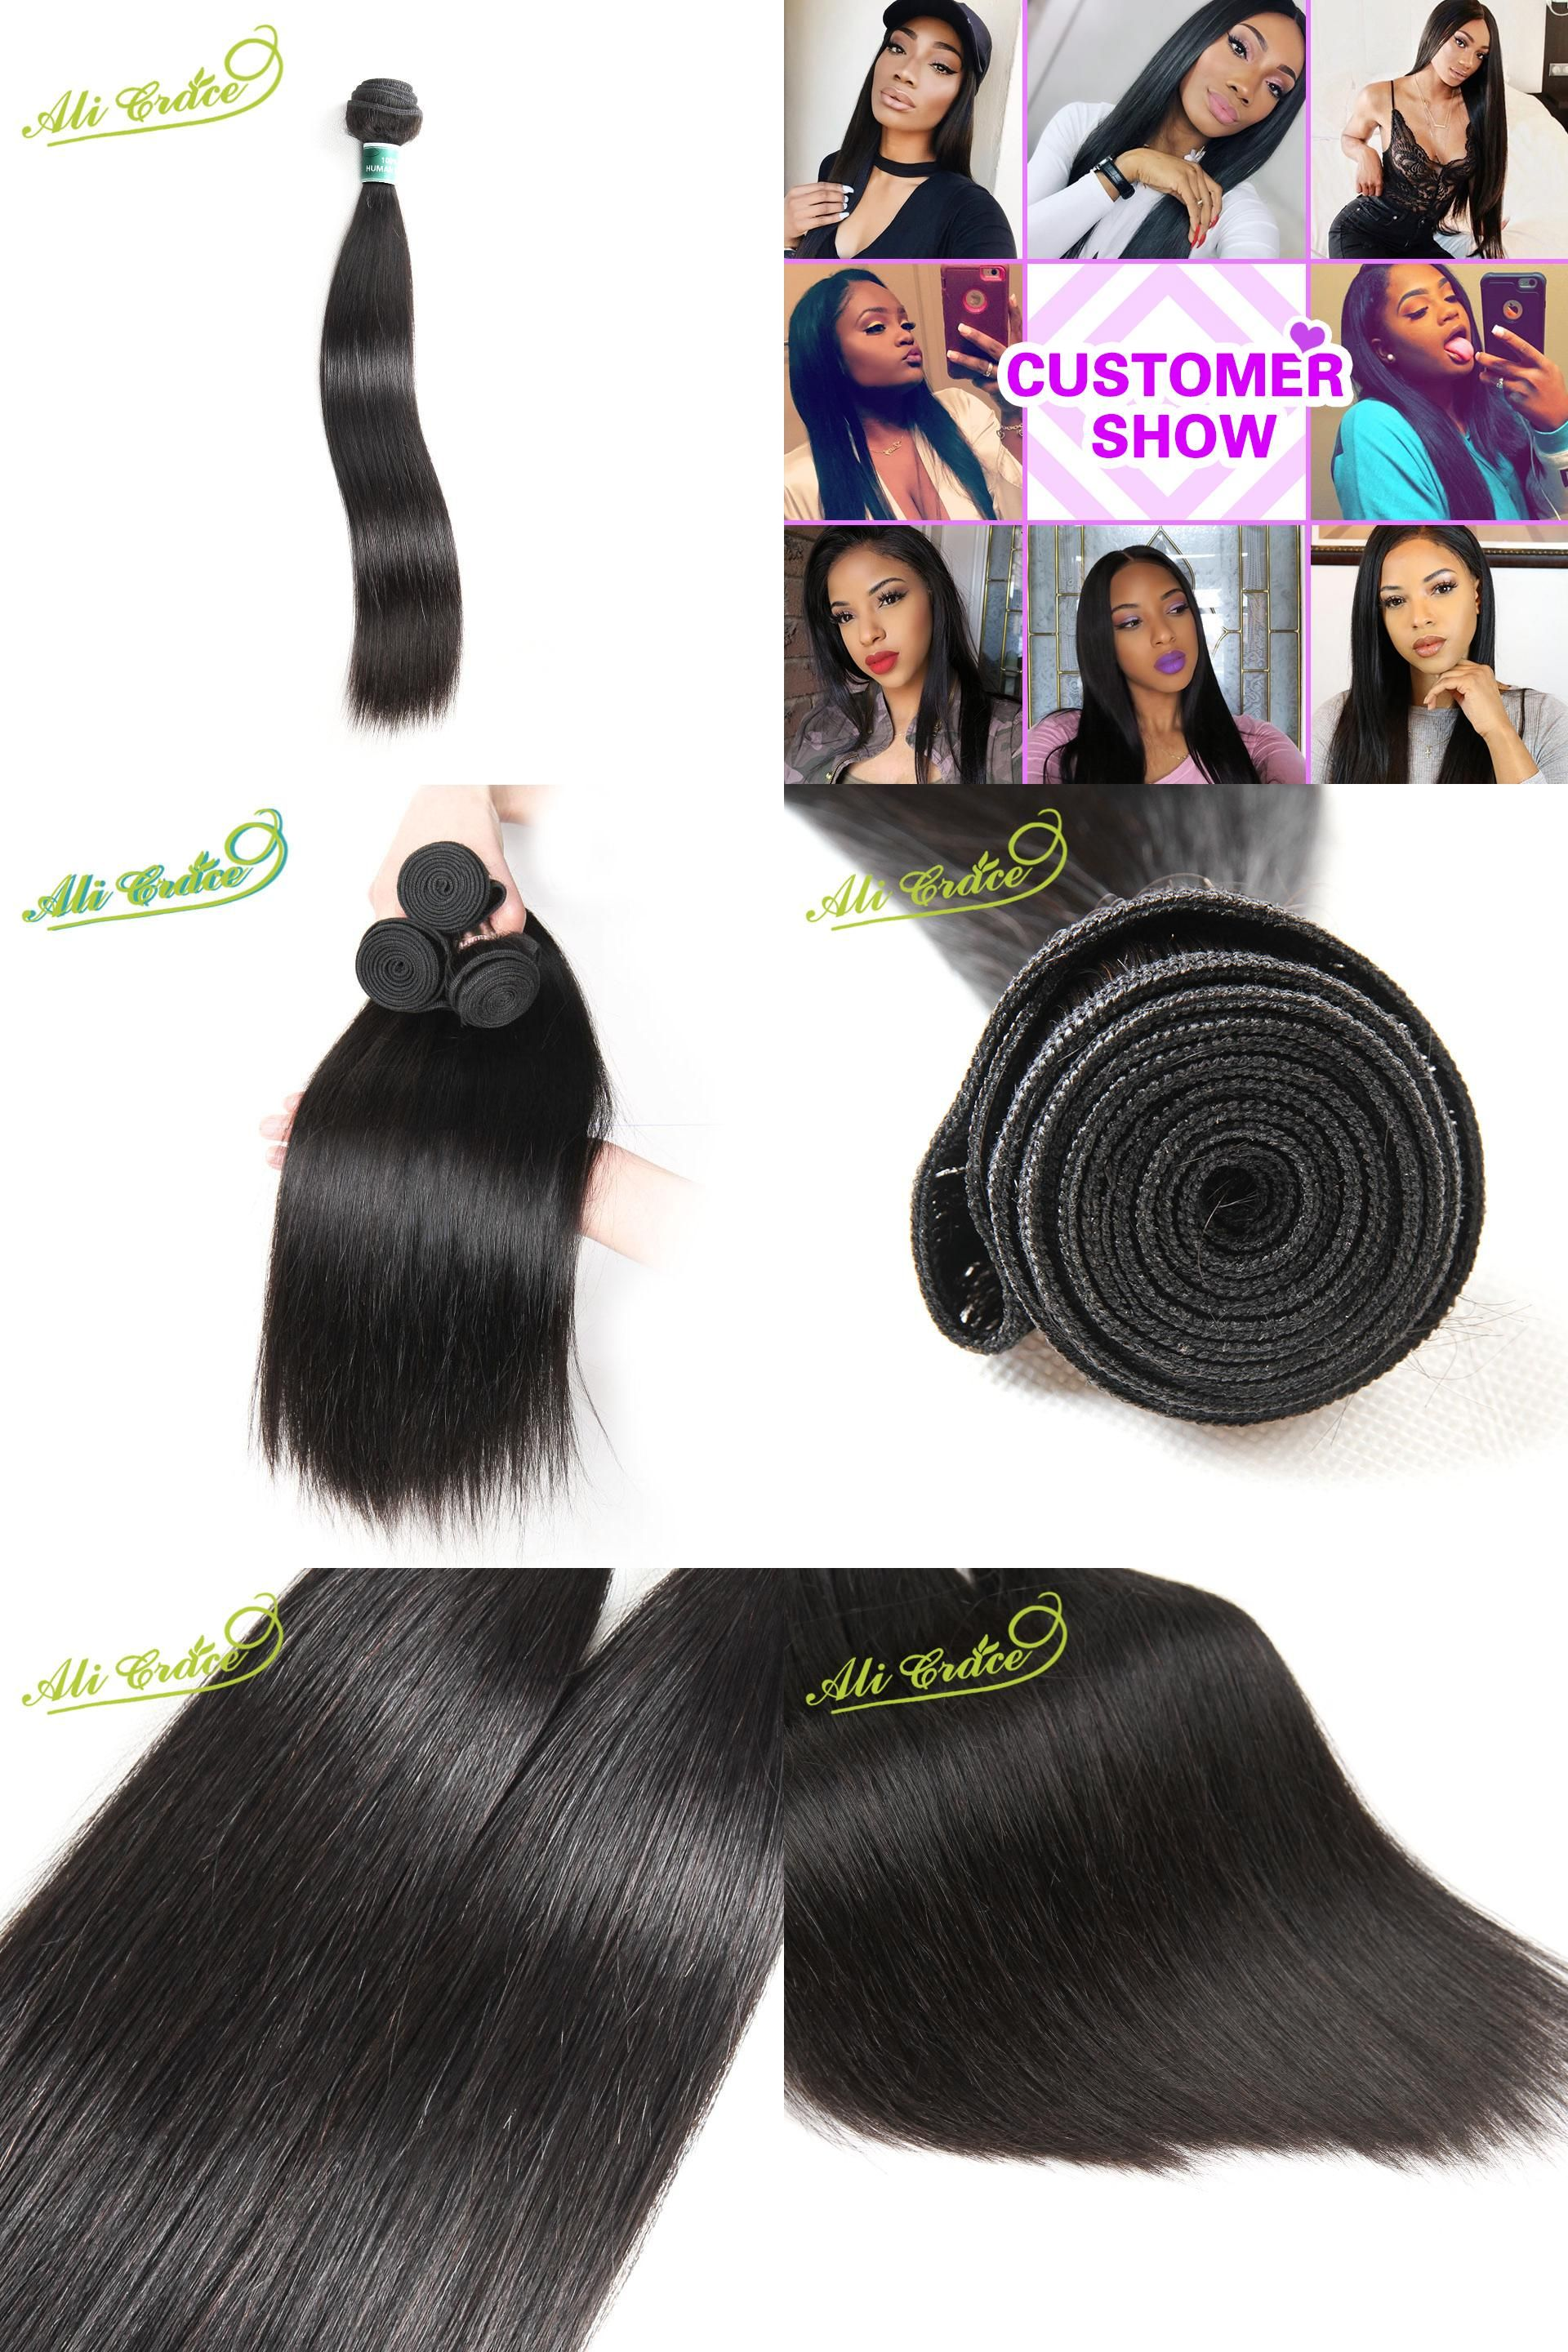 Visit To Buy Ali Grace Hair Malaysian Straight Hair Weave 1